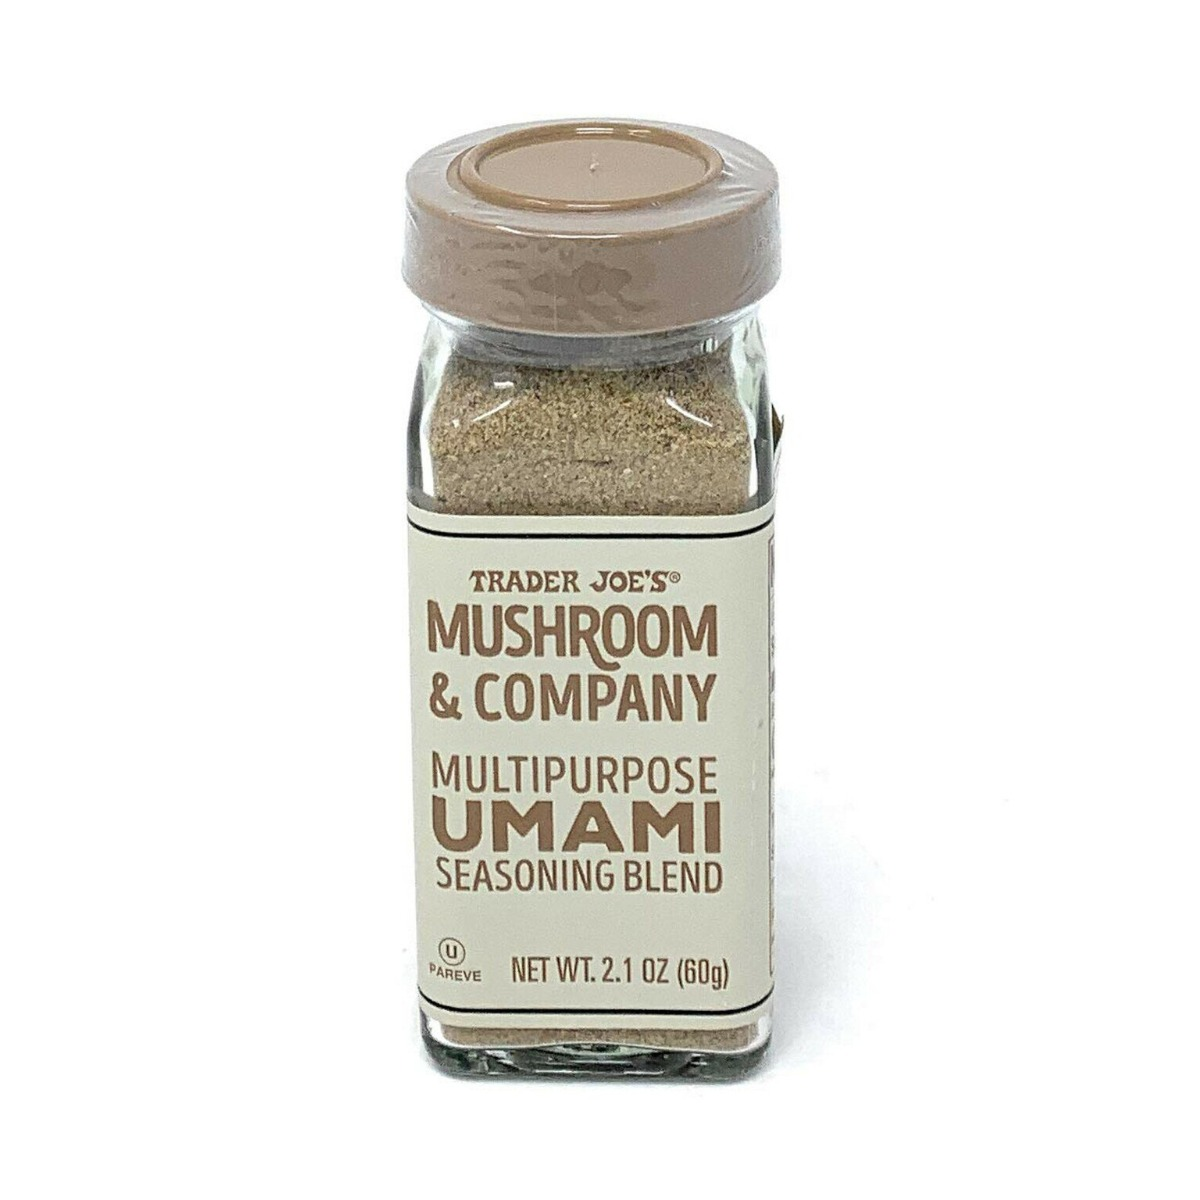 Trader Joe's Multi-Purpose Umami Seasoning Blend..